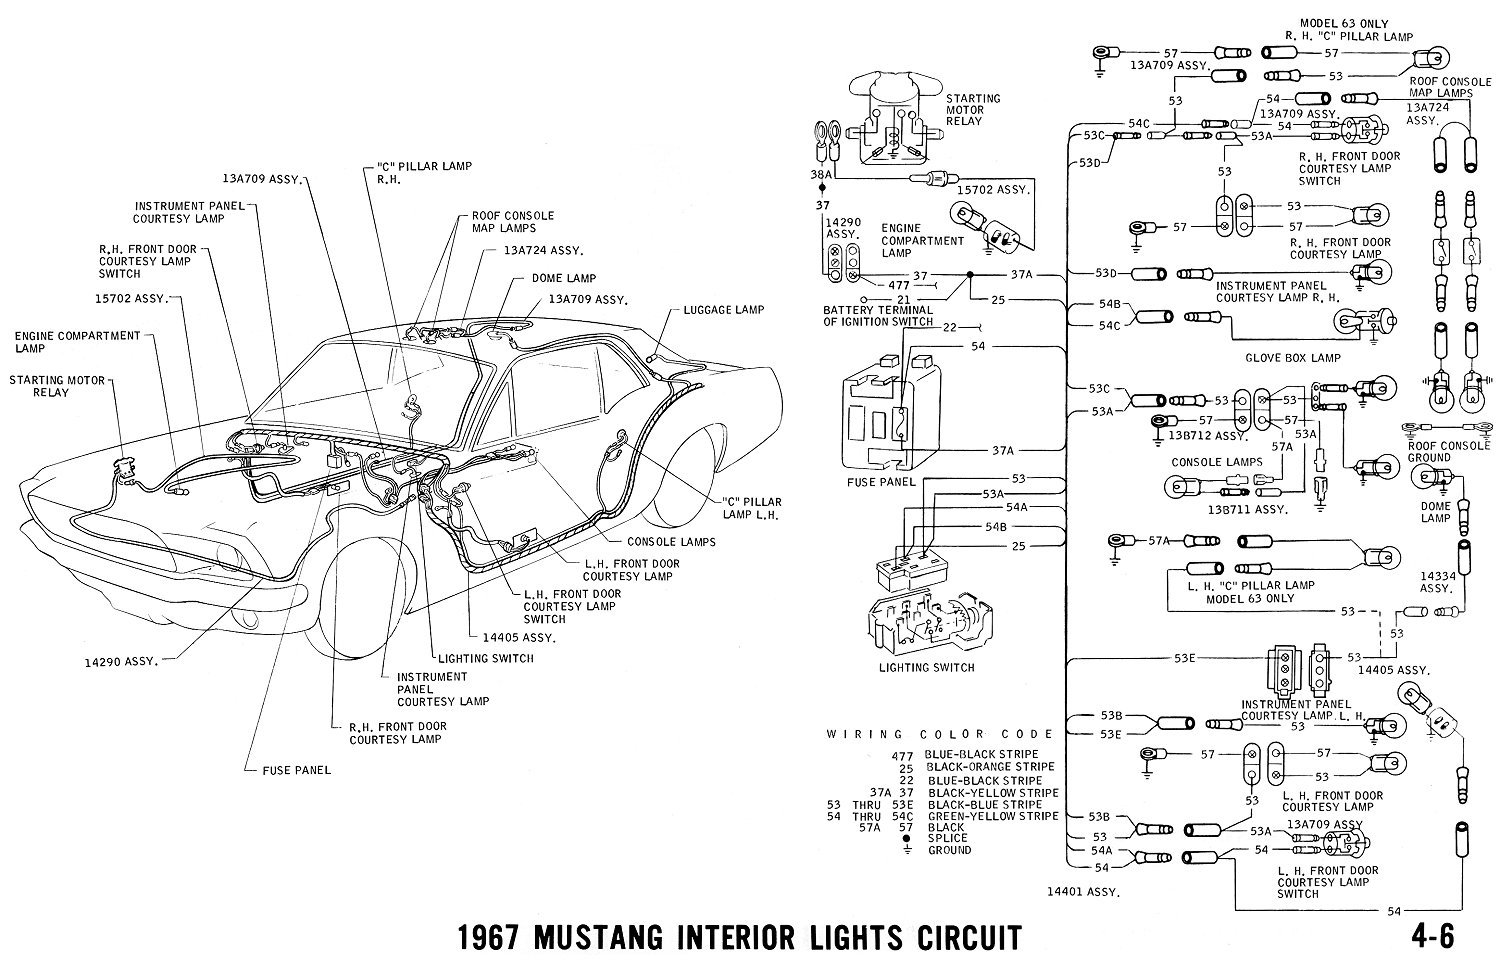 68 mustang underdash wiring  looking at the wiring schematic  i u0026 39 m confused  the two wires for